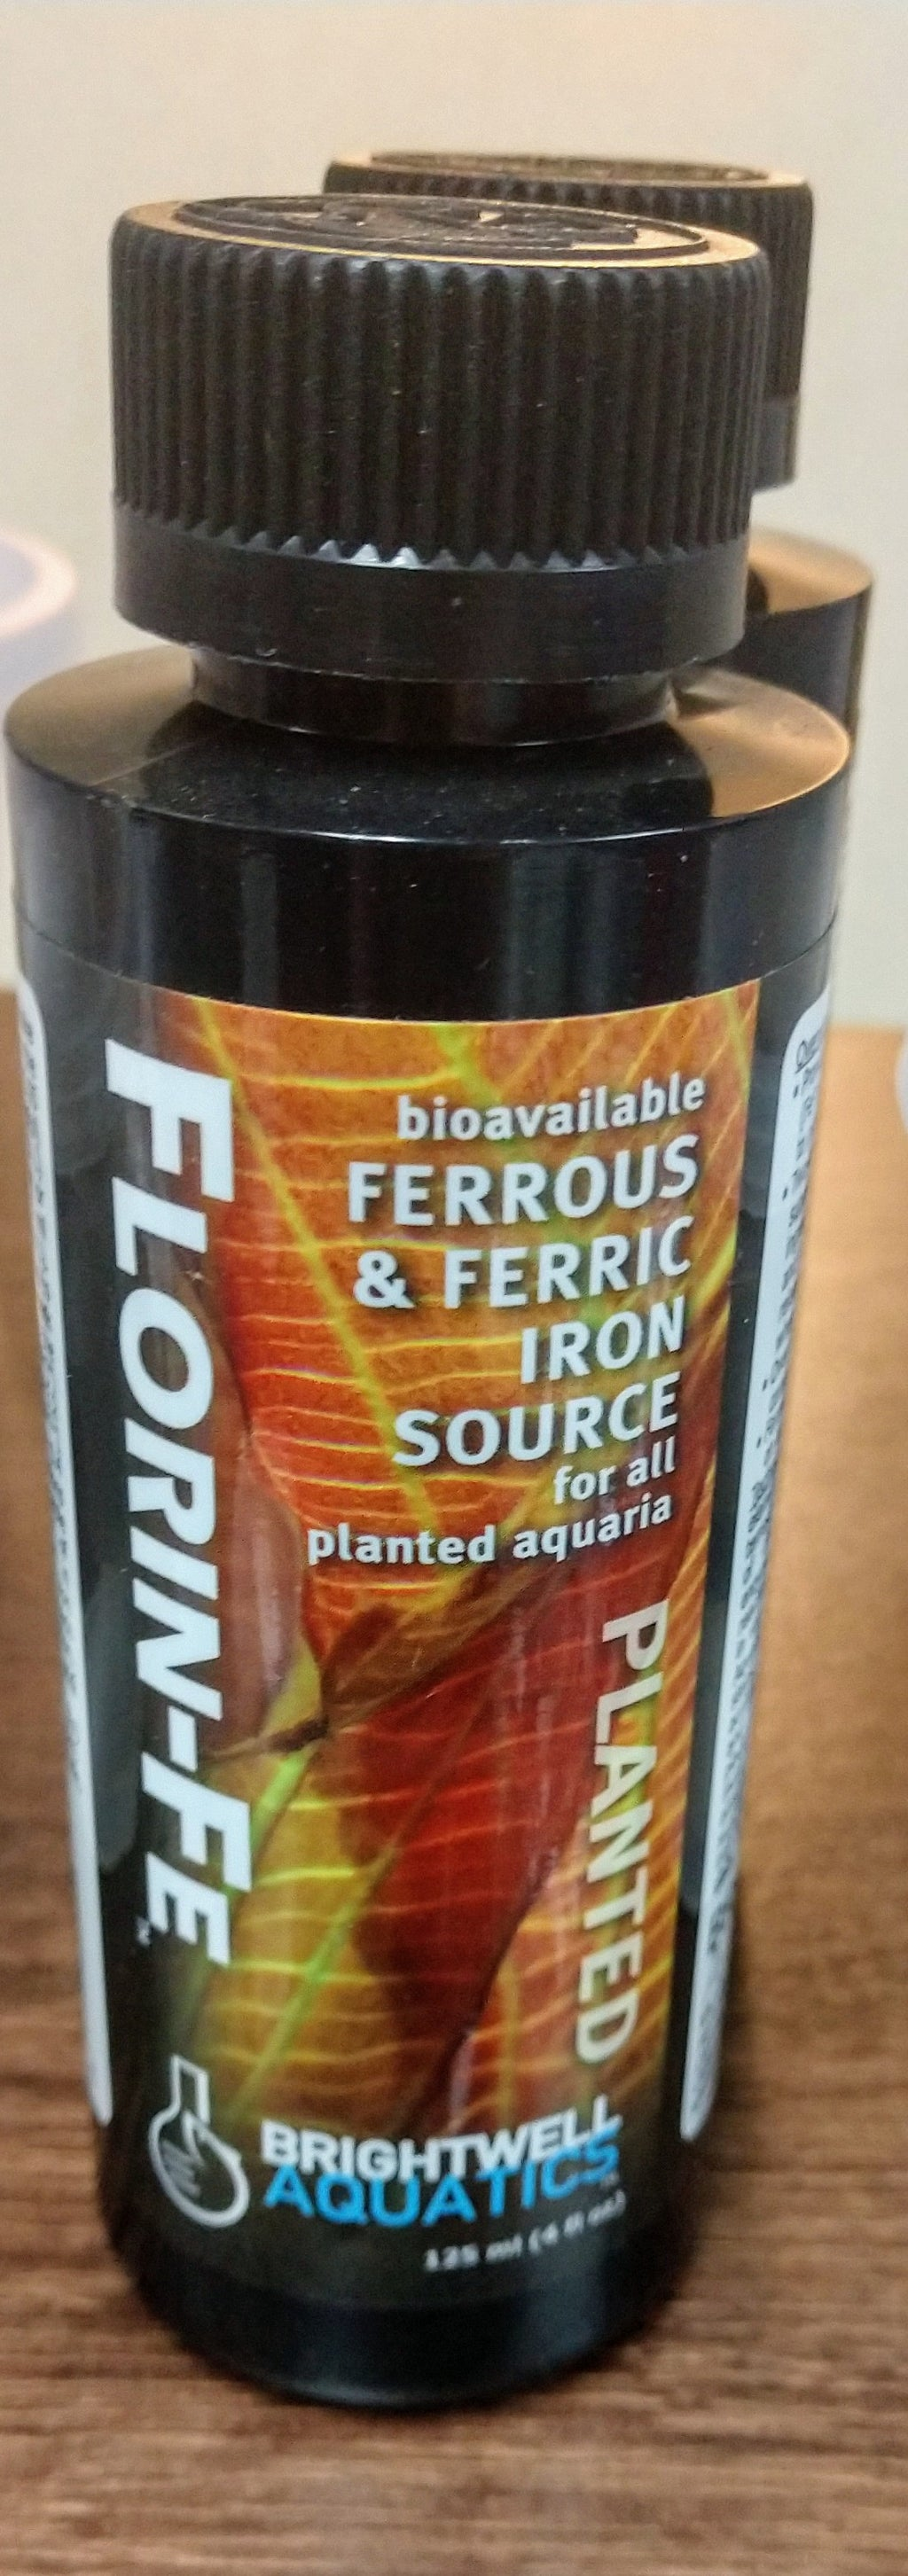 Ferrous & Ferric Iron Source